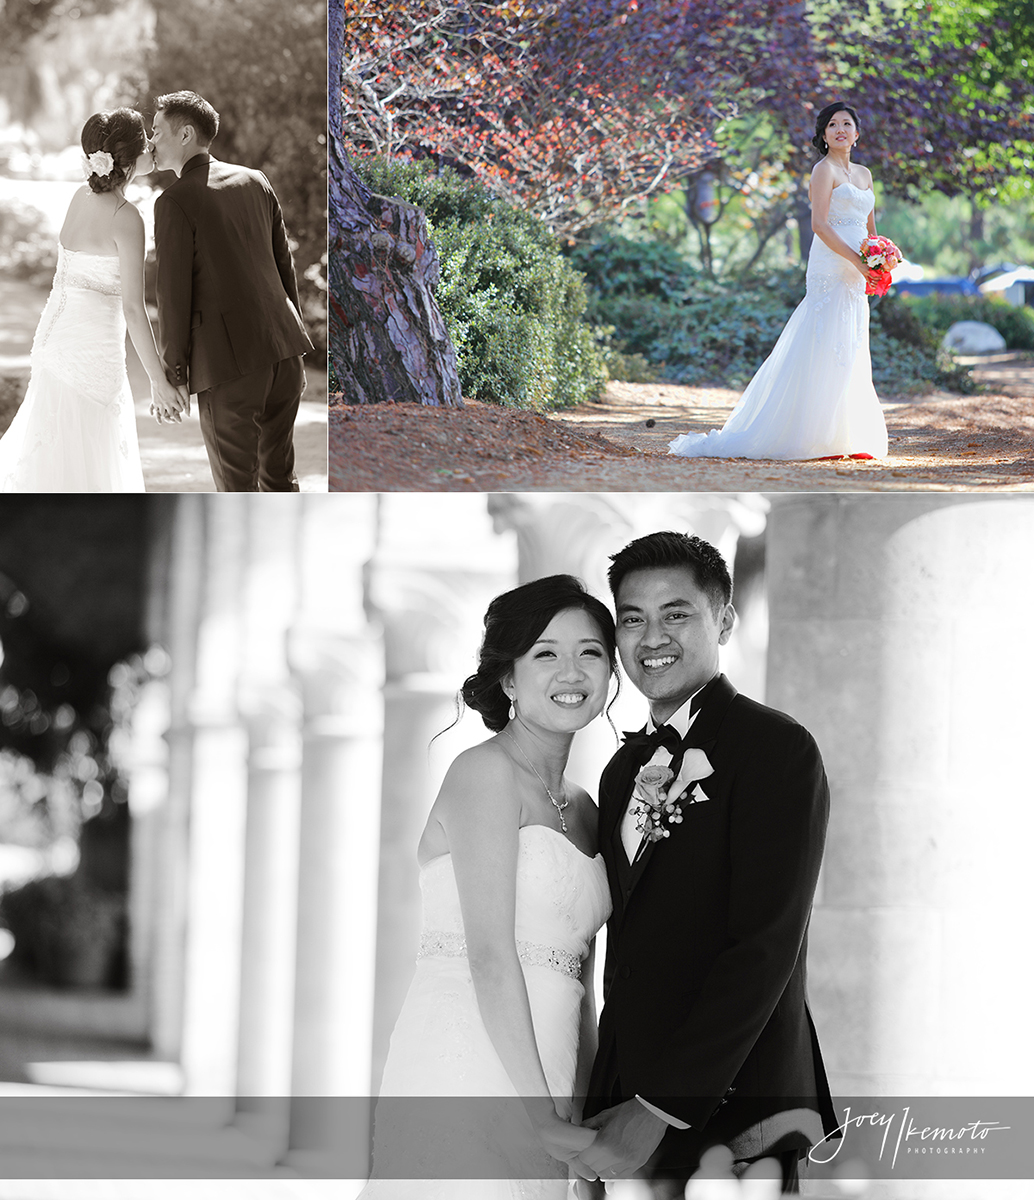 St-James-Church-and-Double-Tree-Torrance-Wedding_0020_Blog-Collage-1470959594380